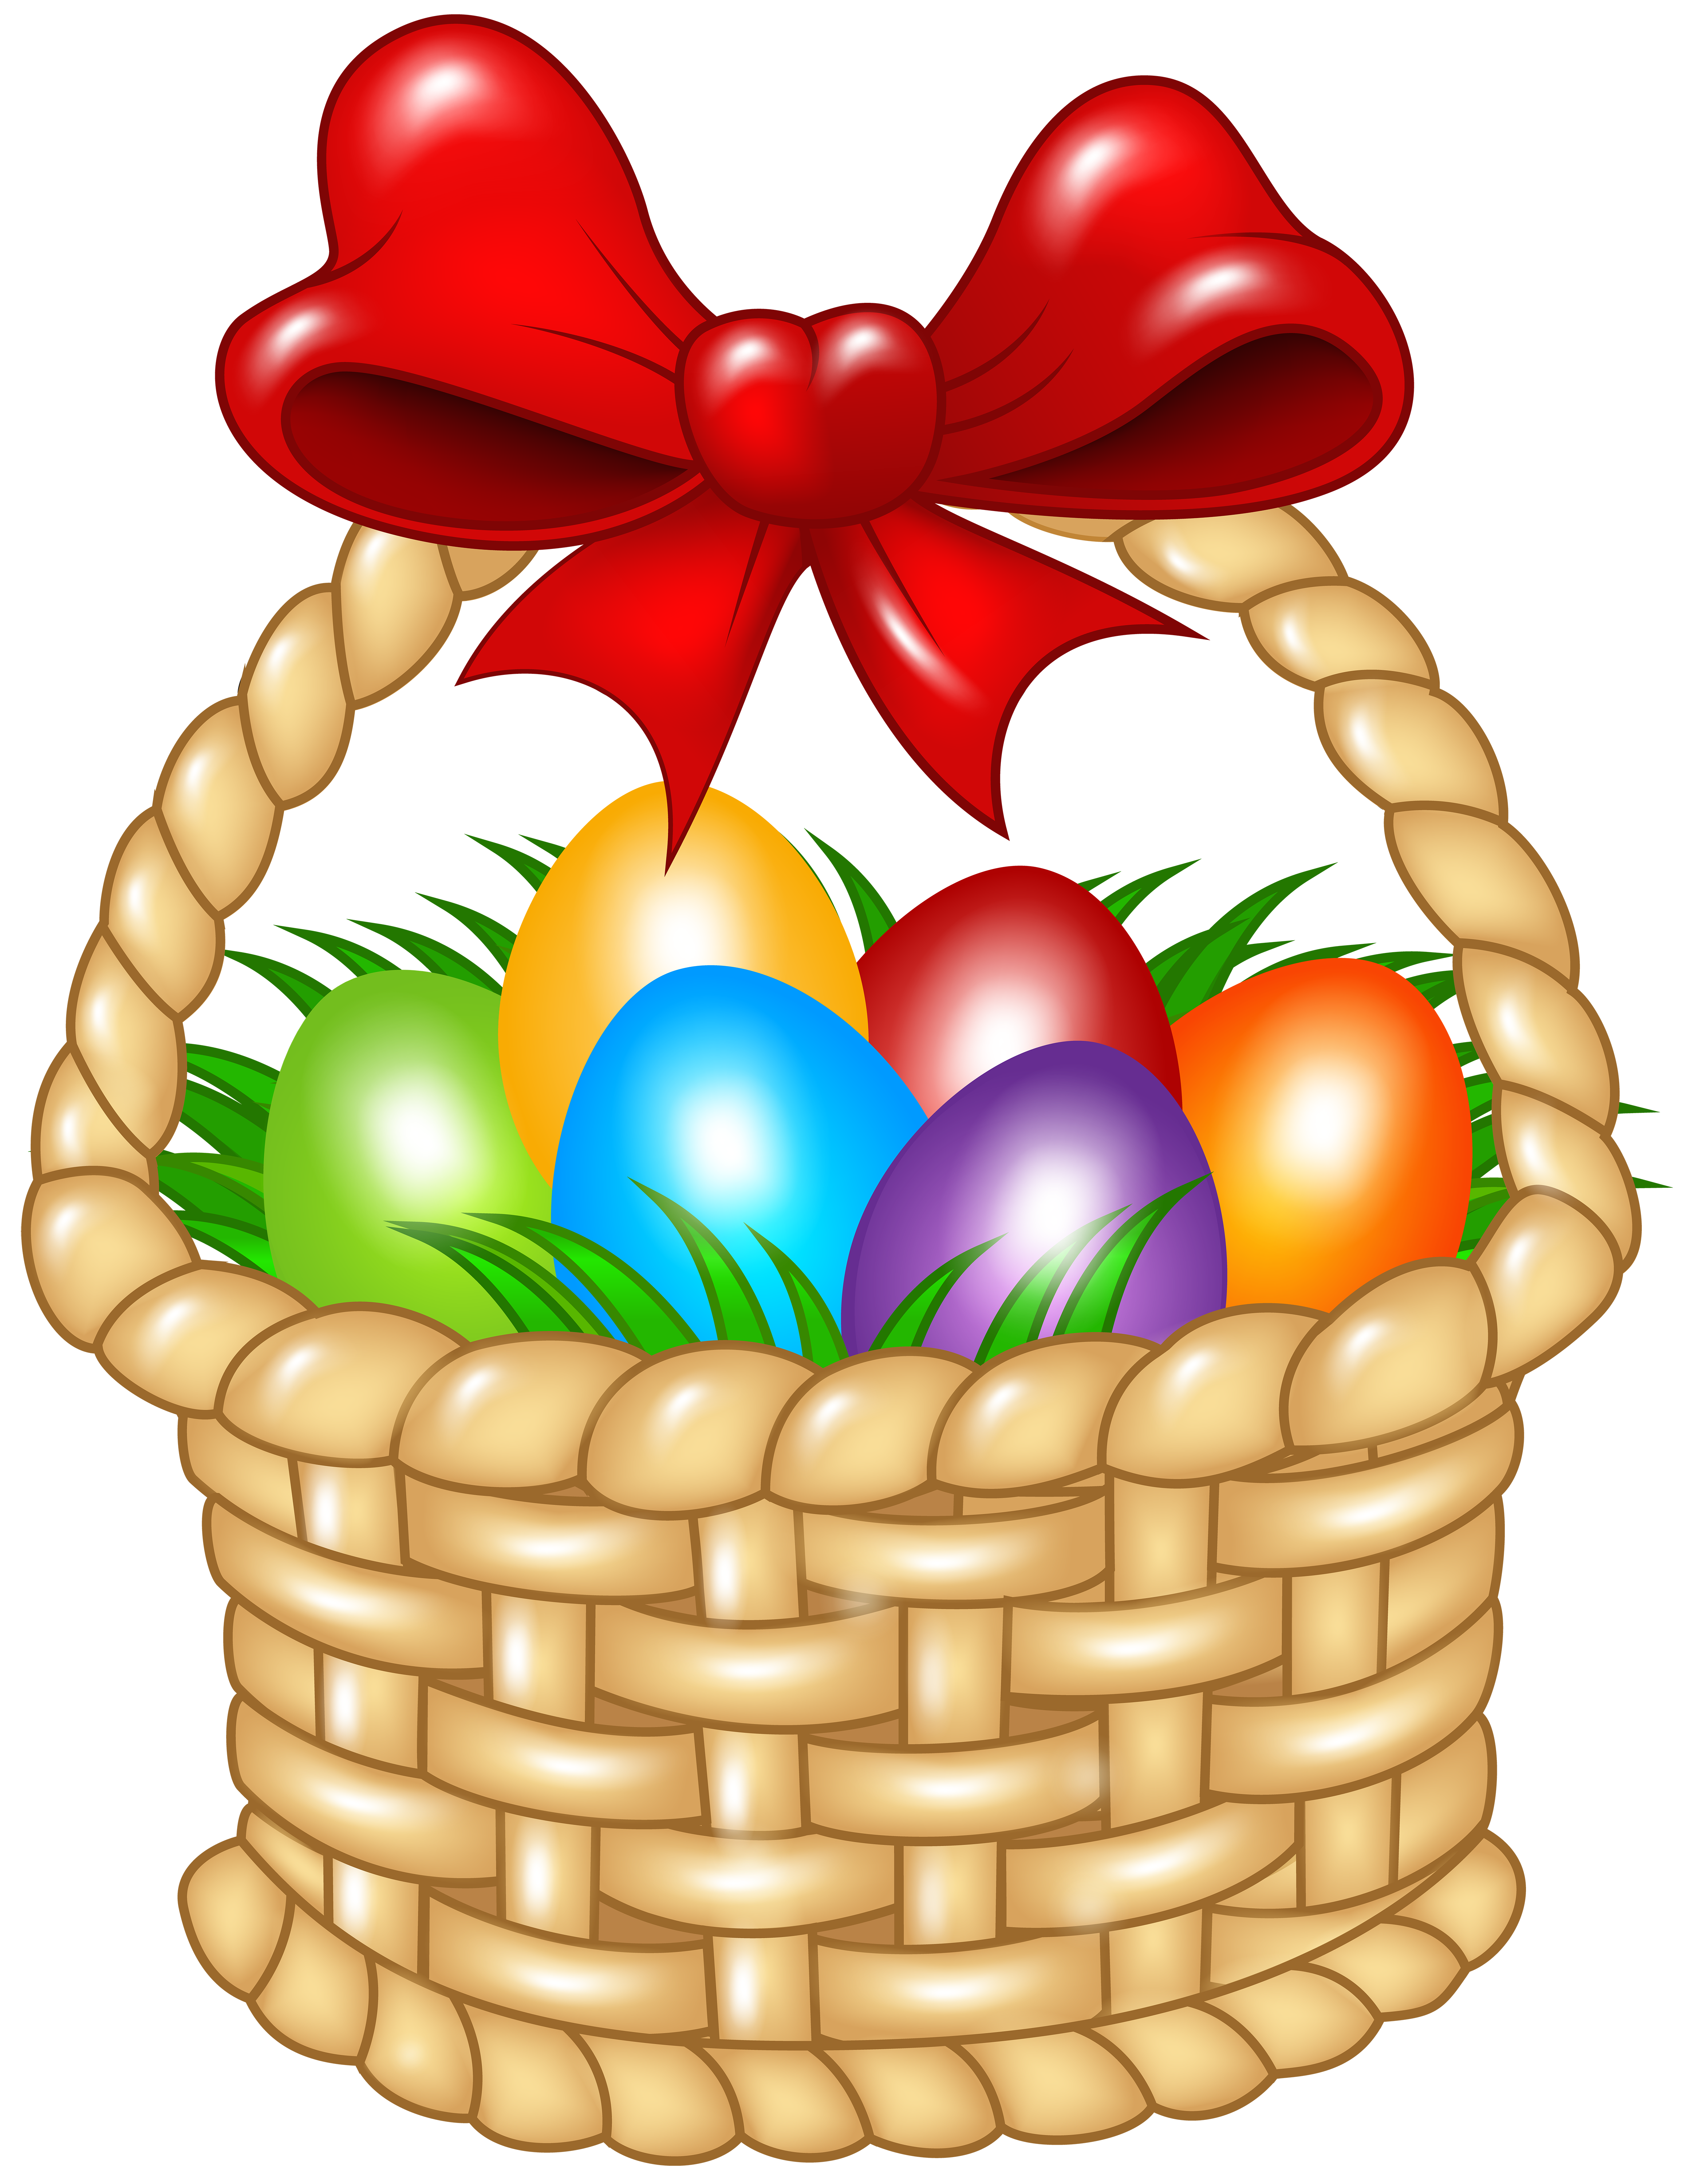 Easter basket pictures clipart clip art freeuse stock Easter Basket Clipart at GetDrawings.com | Free for personal use ... clip art freeuse stock